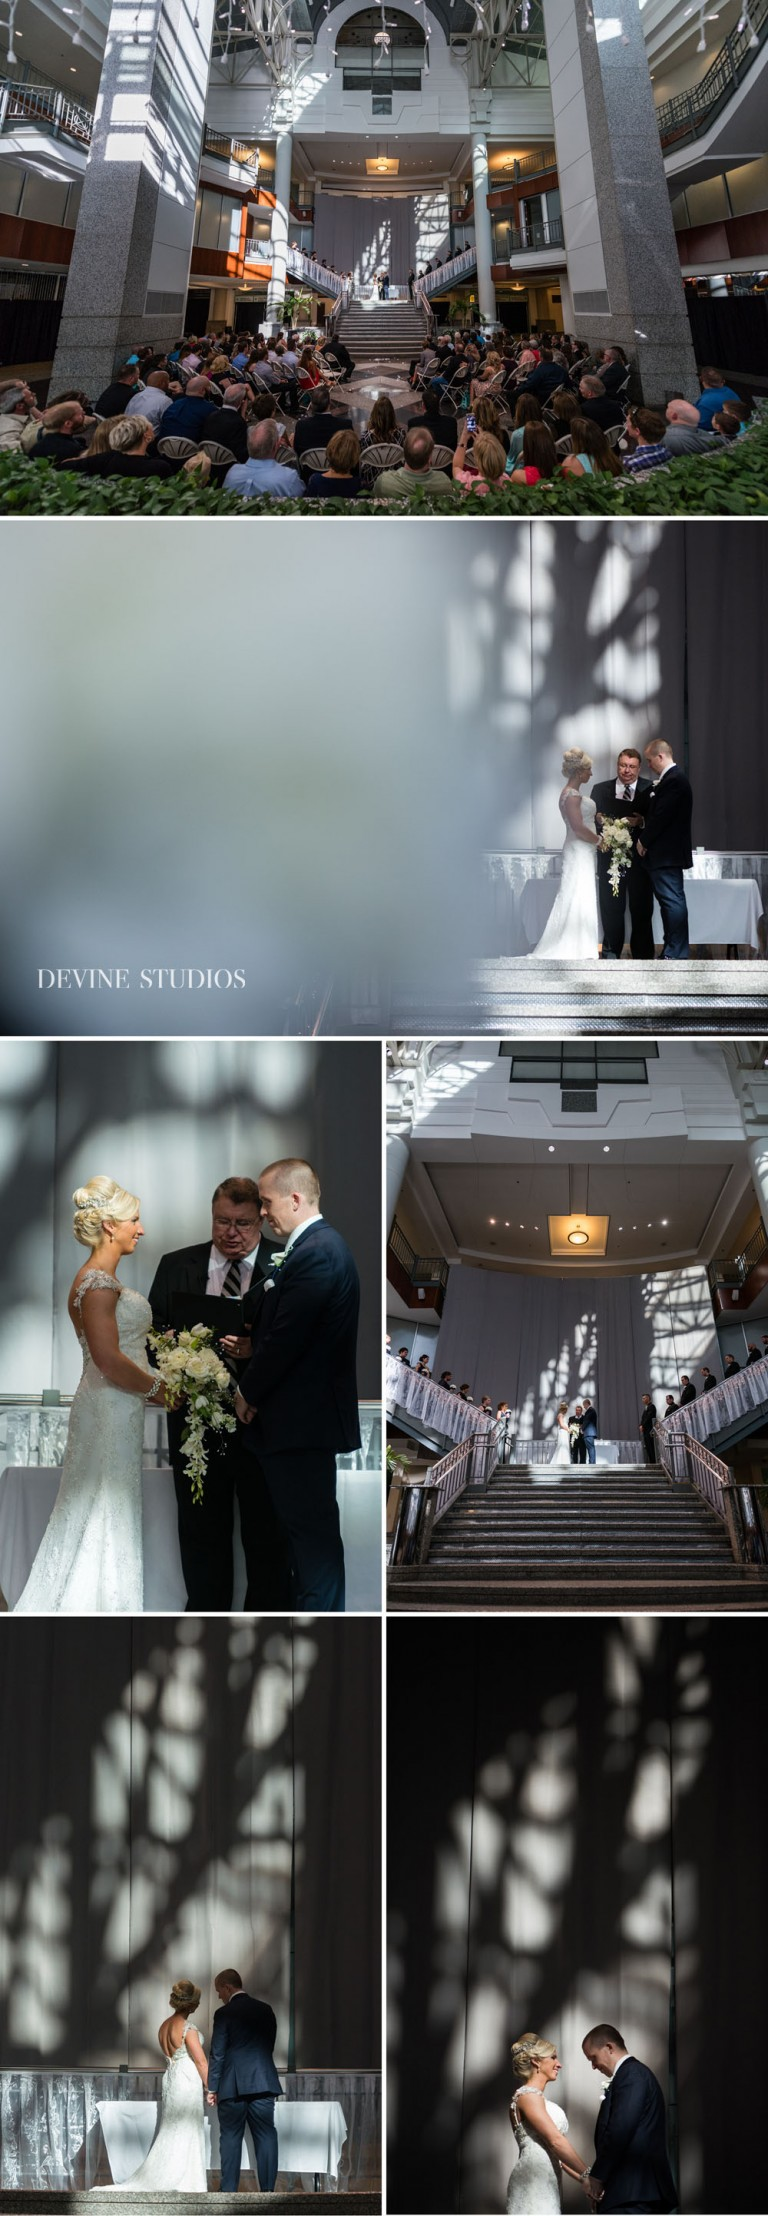 http://devinestudios.com/boudoir/wp-content/uploads/2016/05/10-839-post/Kansas-City-Wedding-Photography-Town-Pavilion-photojournalist-photographers10-768x2216.jpg